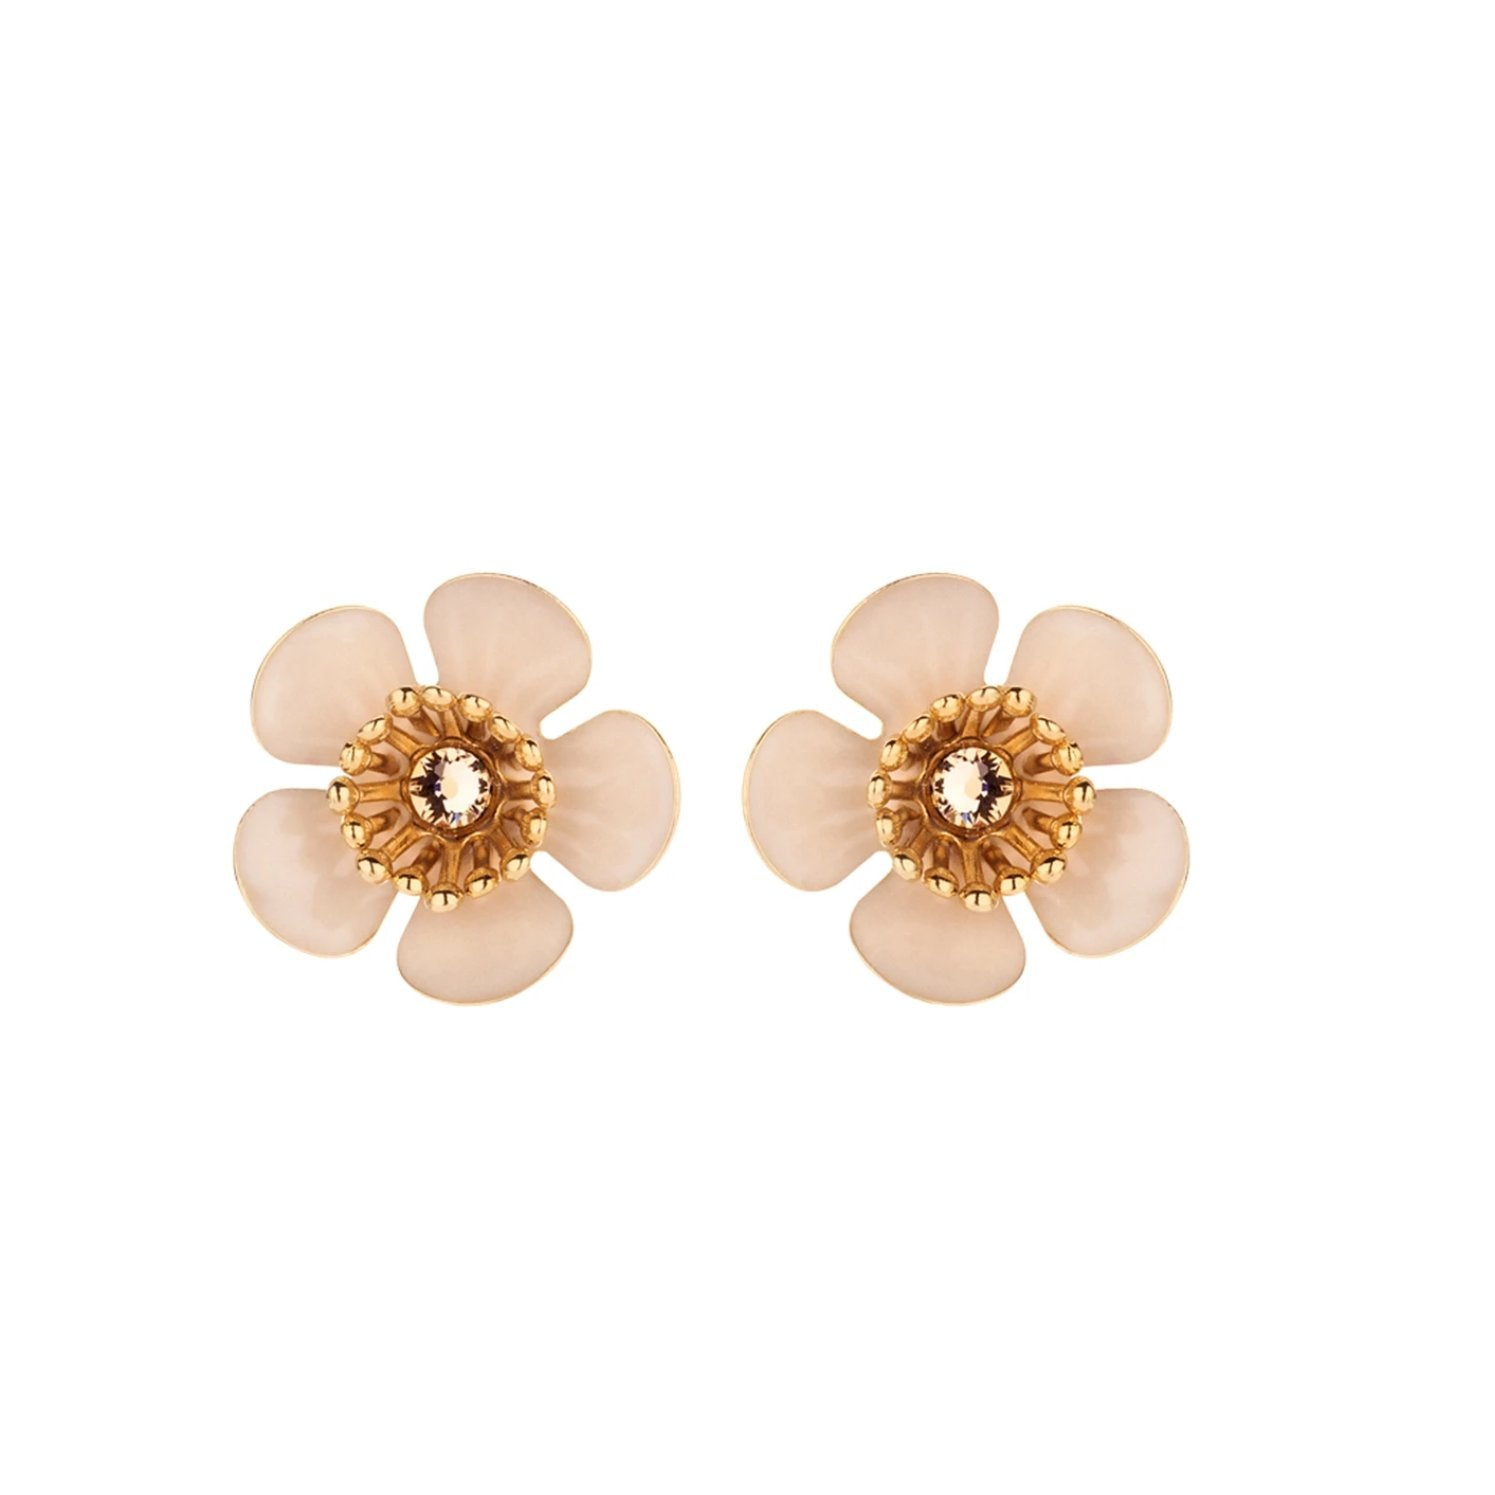 Gina mini enamel flower nude earrings - Souvenirs de Pomme